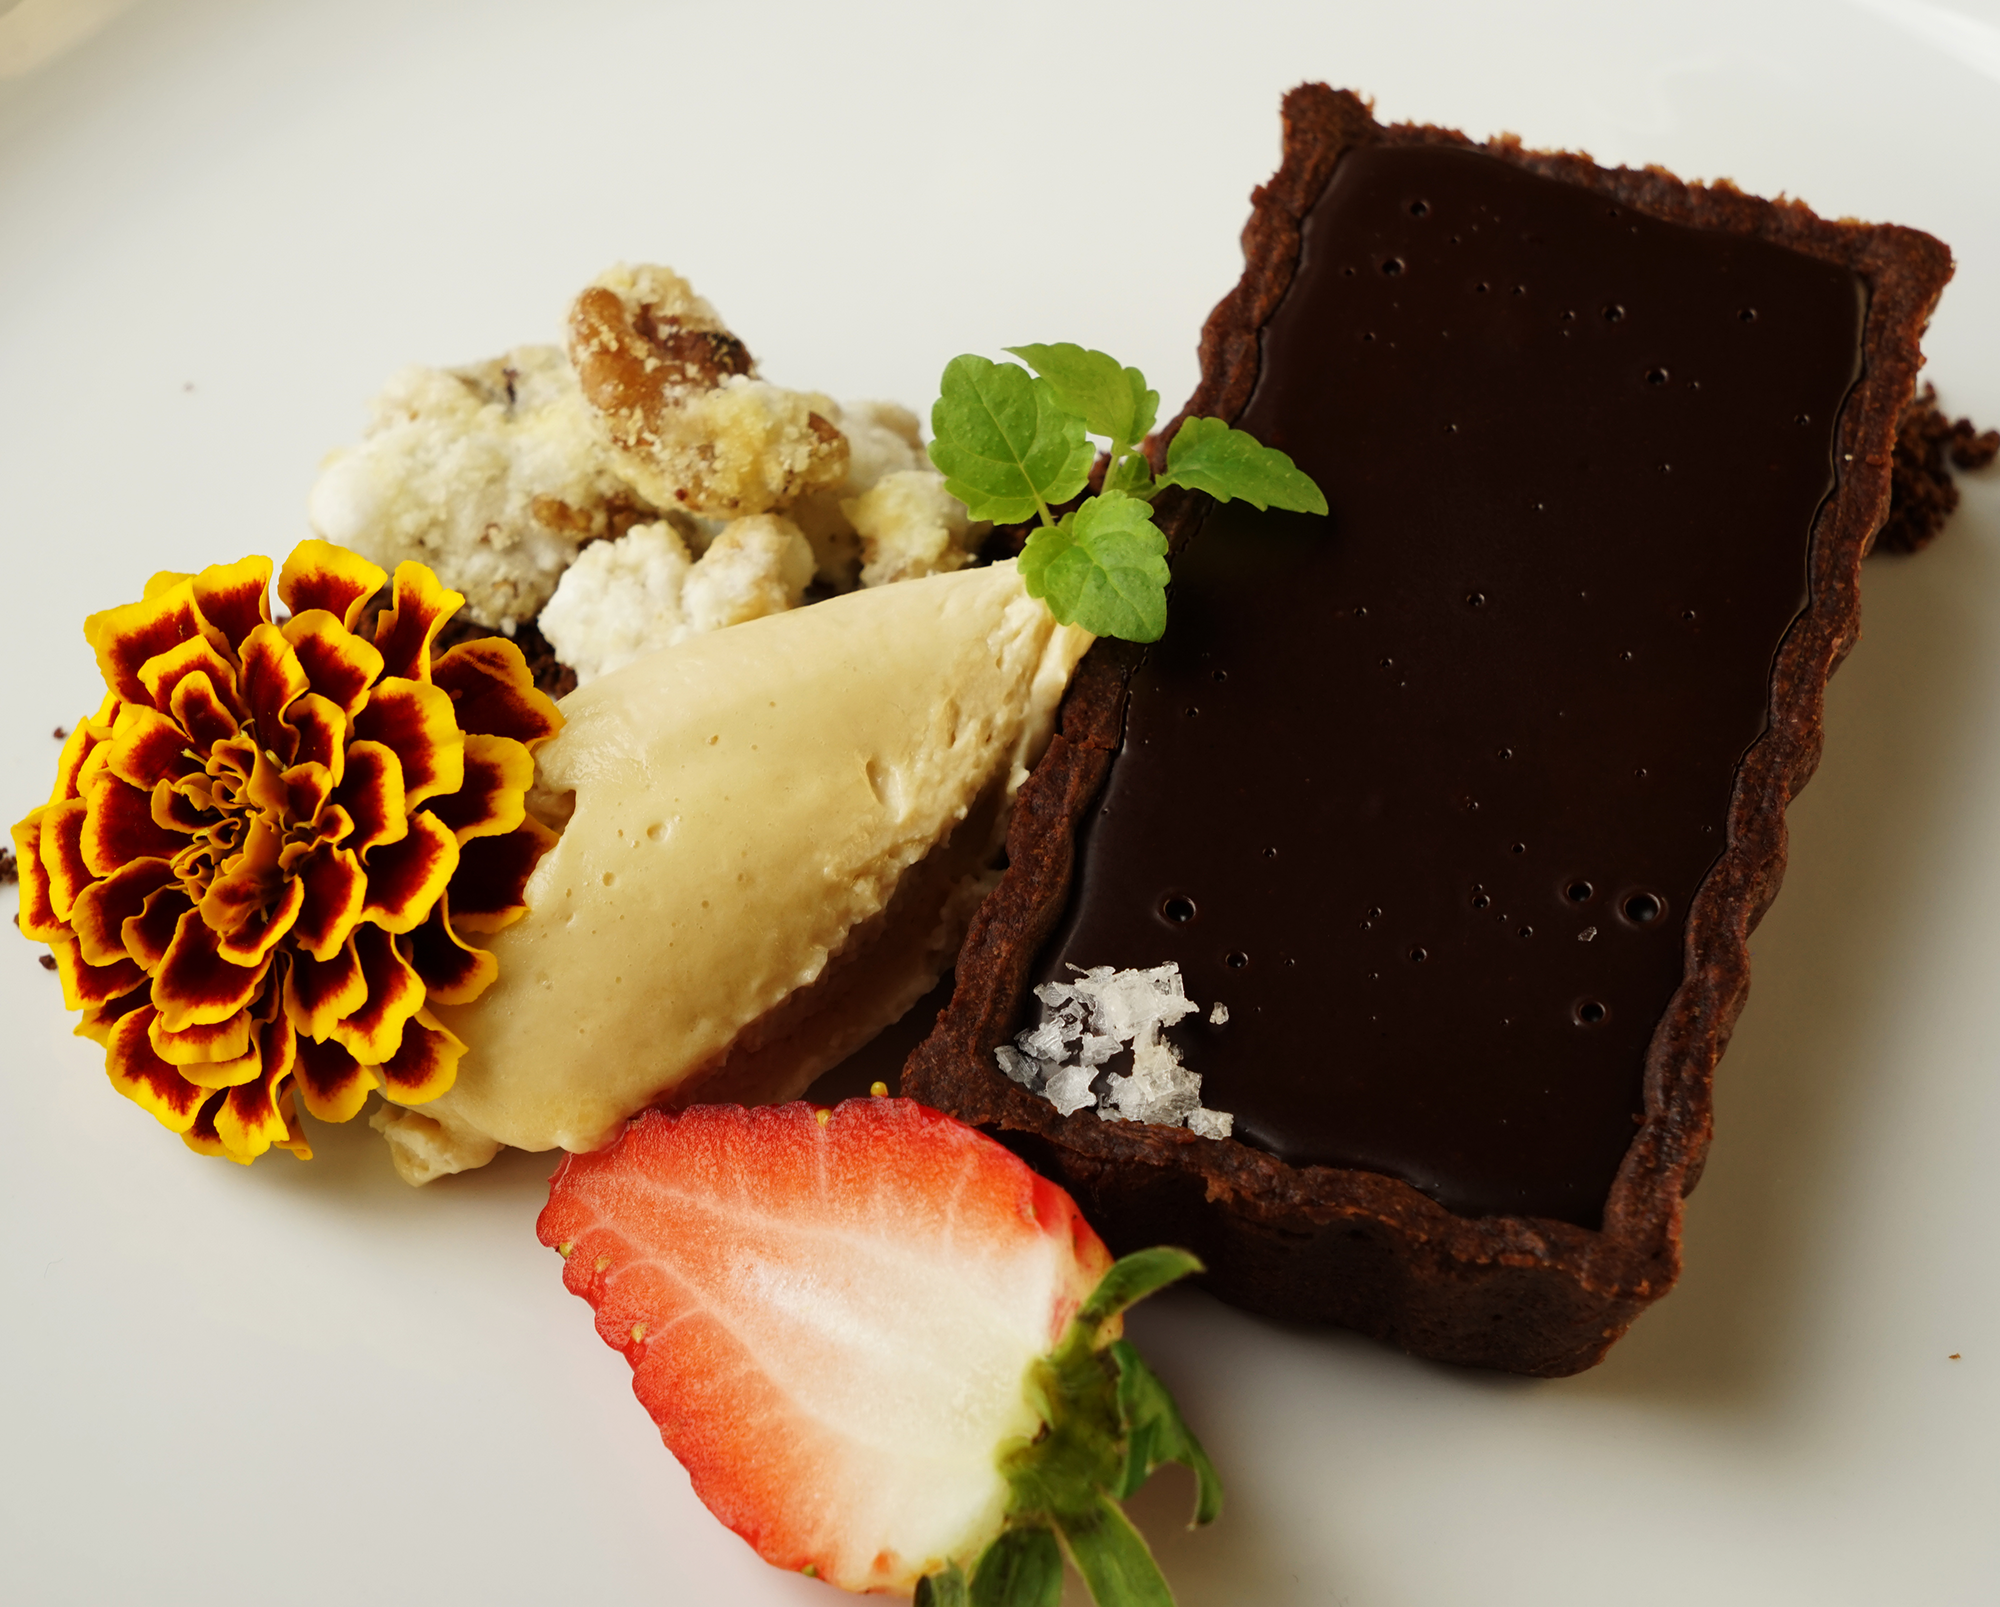 Chocolate tart - site menu